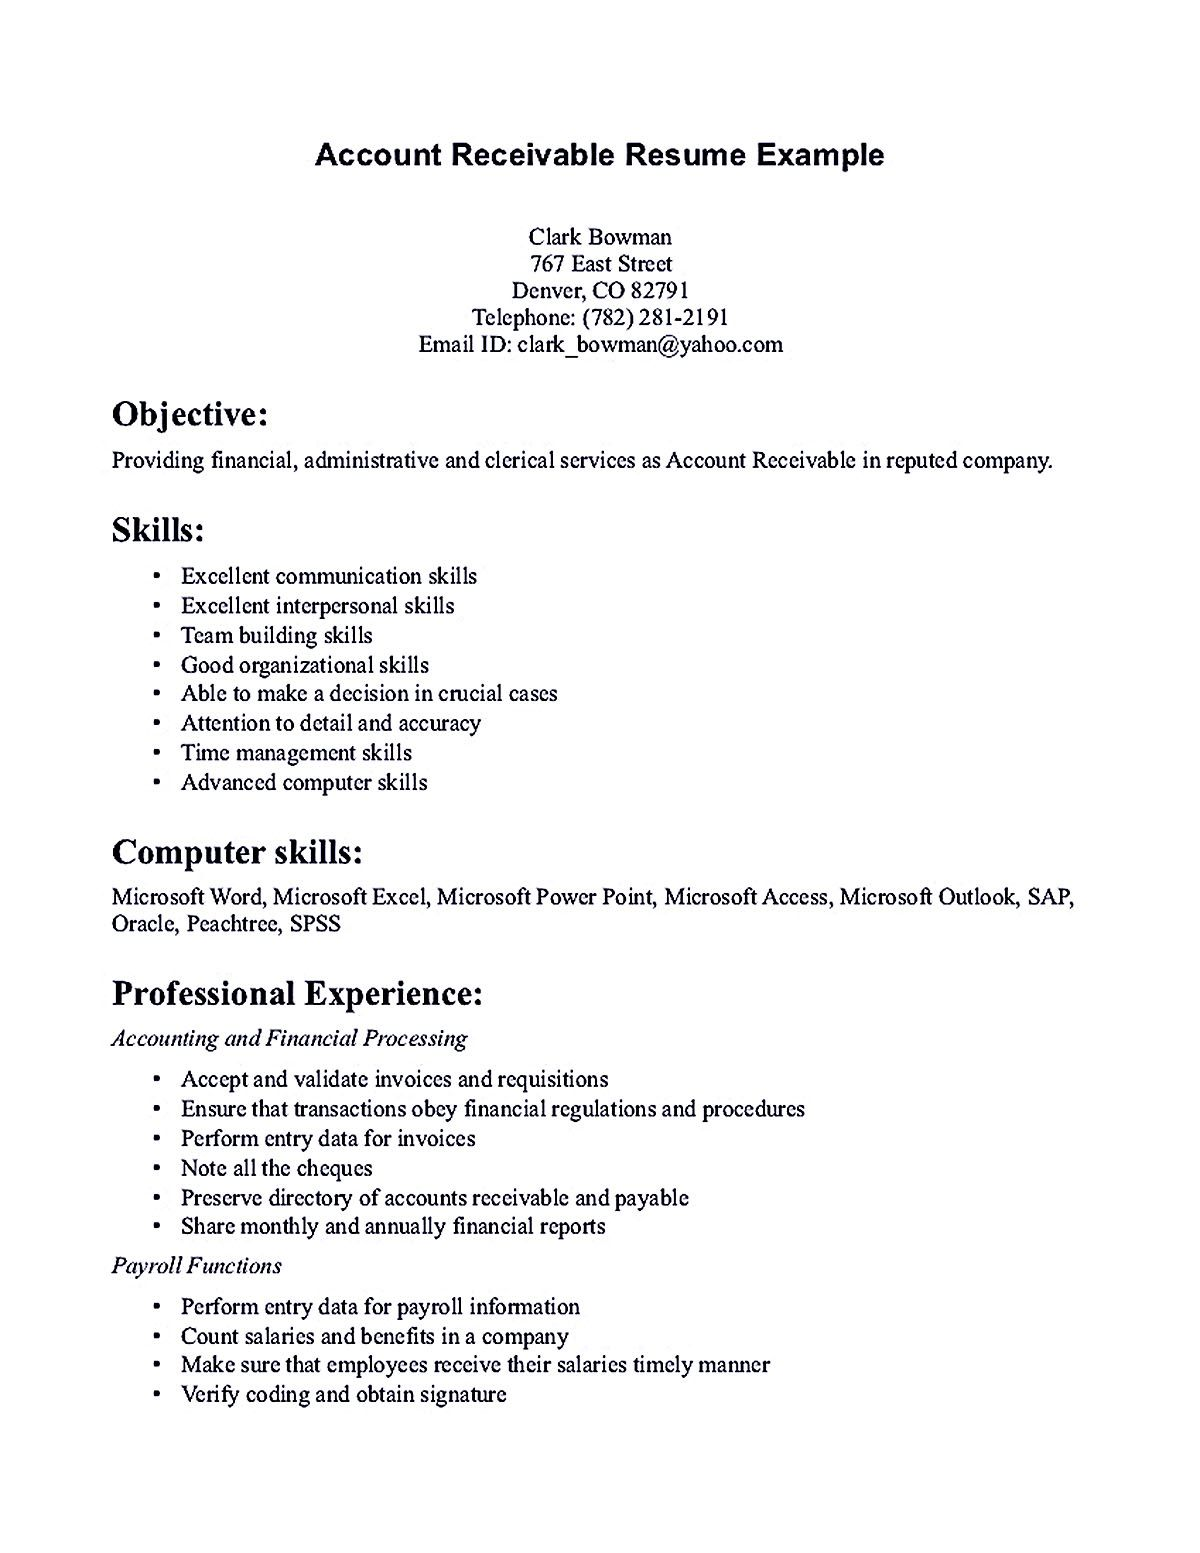 Account Receivable Resume Inspiration Account Receivable Resume Shows Both Technical And Interpersonal .